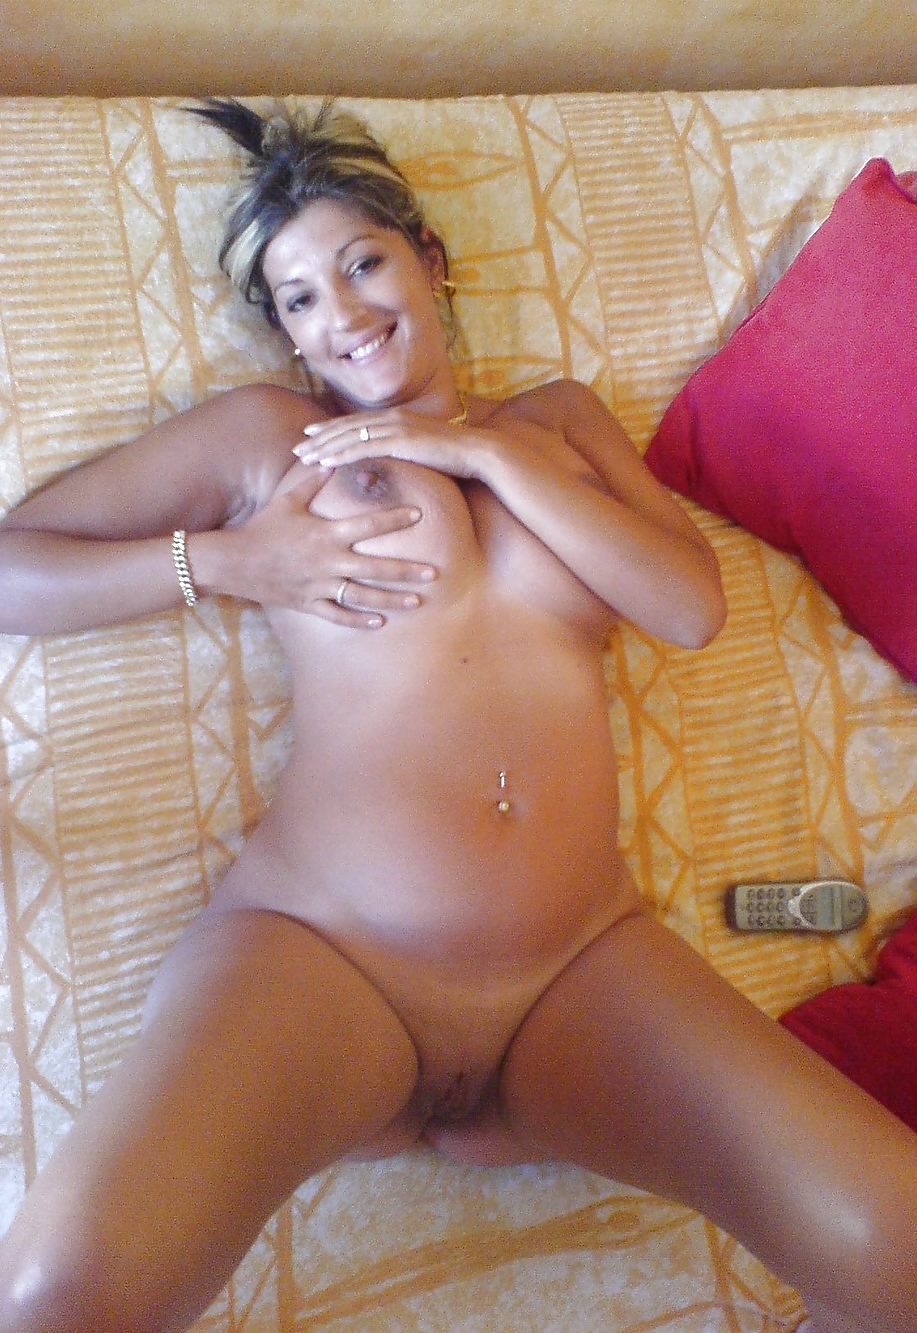 Hot momnextdoor playing with her pussy